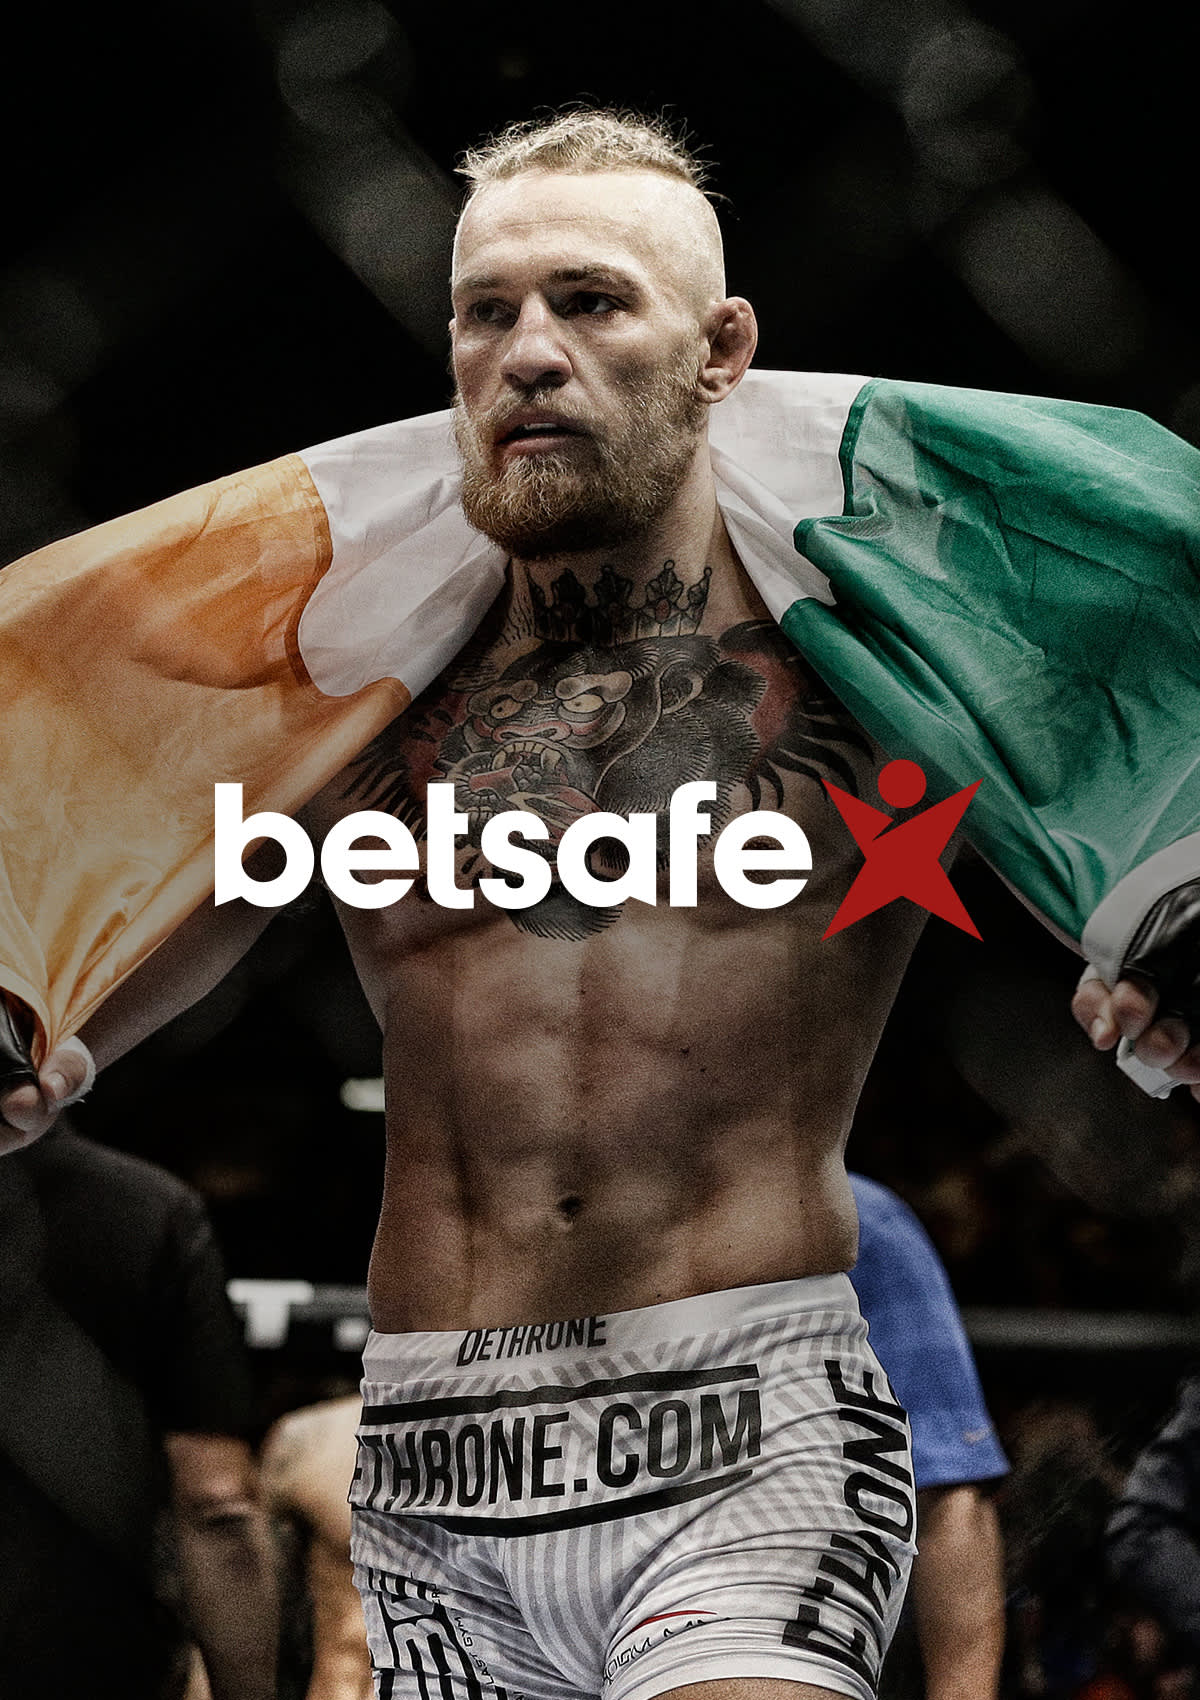 Betsafe - Meet your moment.